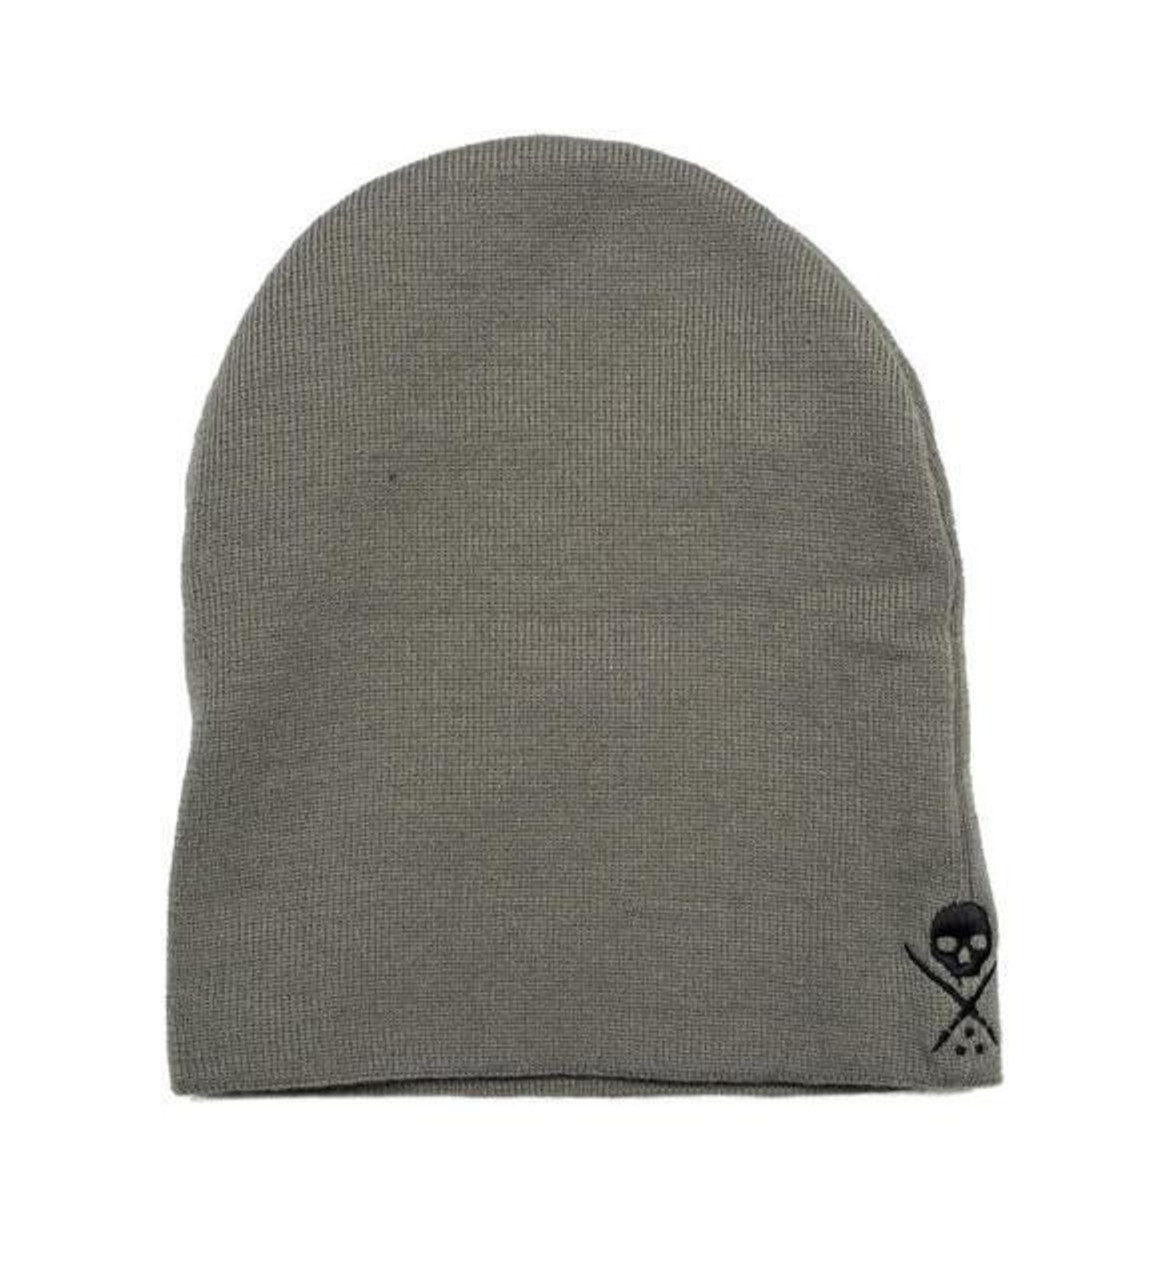 5a37fa63848ee9 Sullen Clothing Standard Issue Knit Winter Beanie Hat Grey Black Skull New  Era